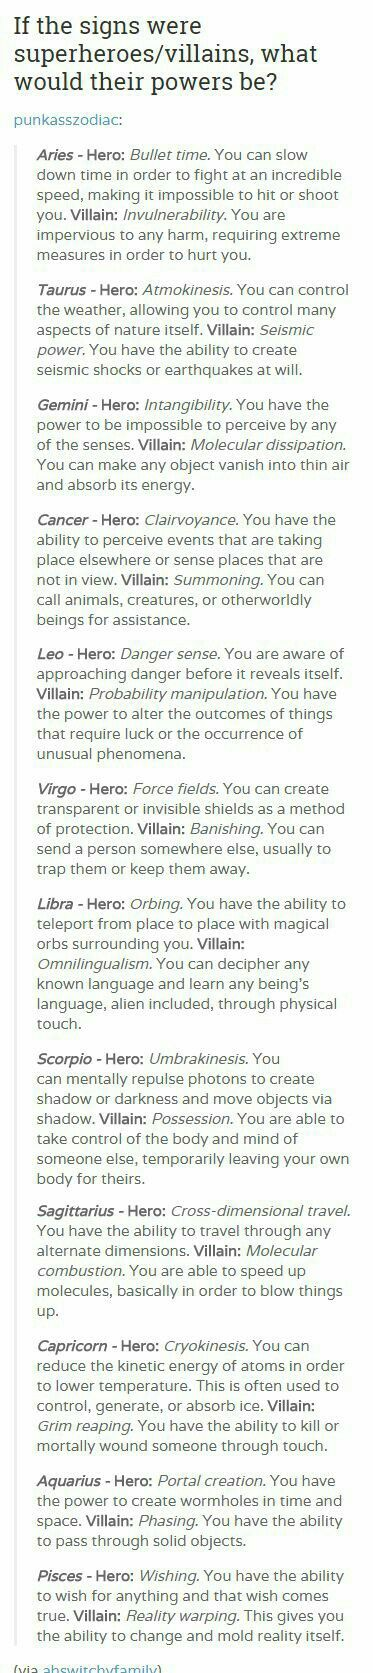 Hell yeah! I'm an Aquarius.  Now to decide whether to be a villian or hero...